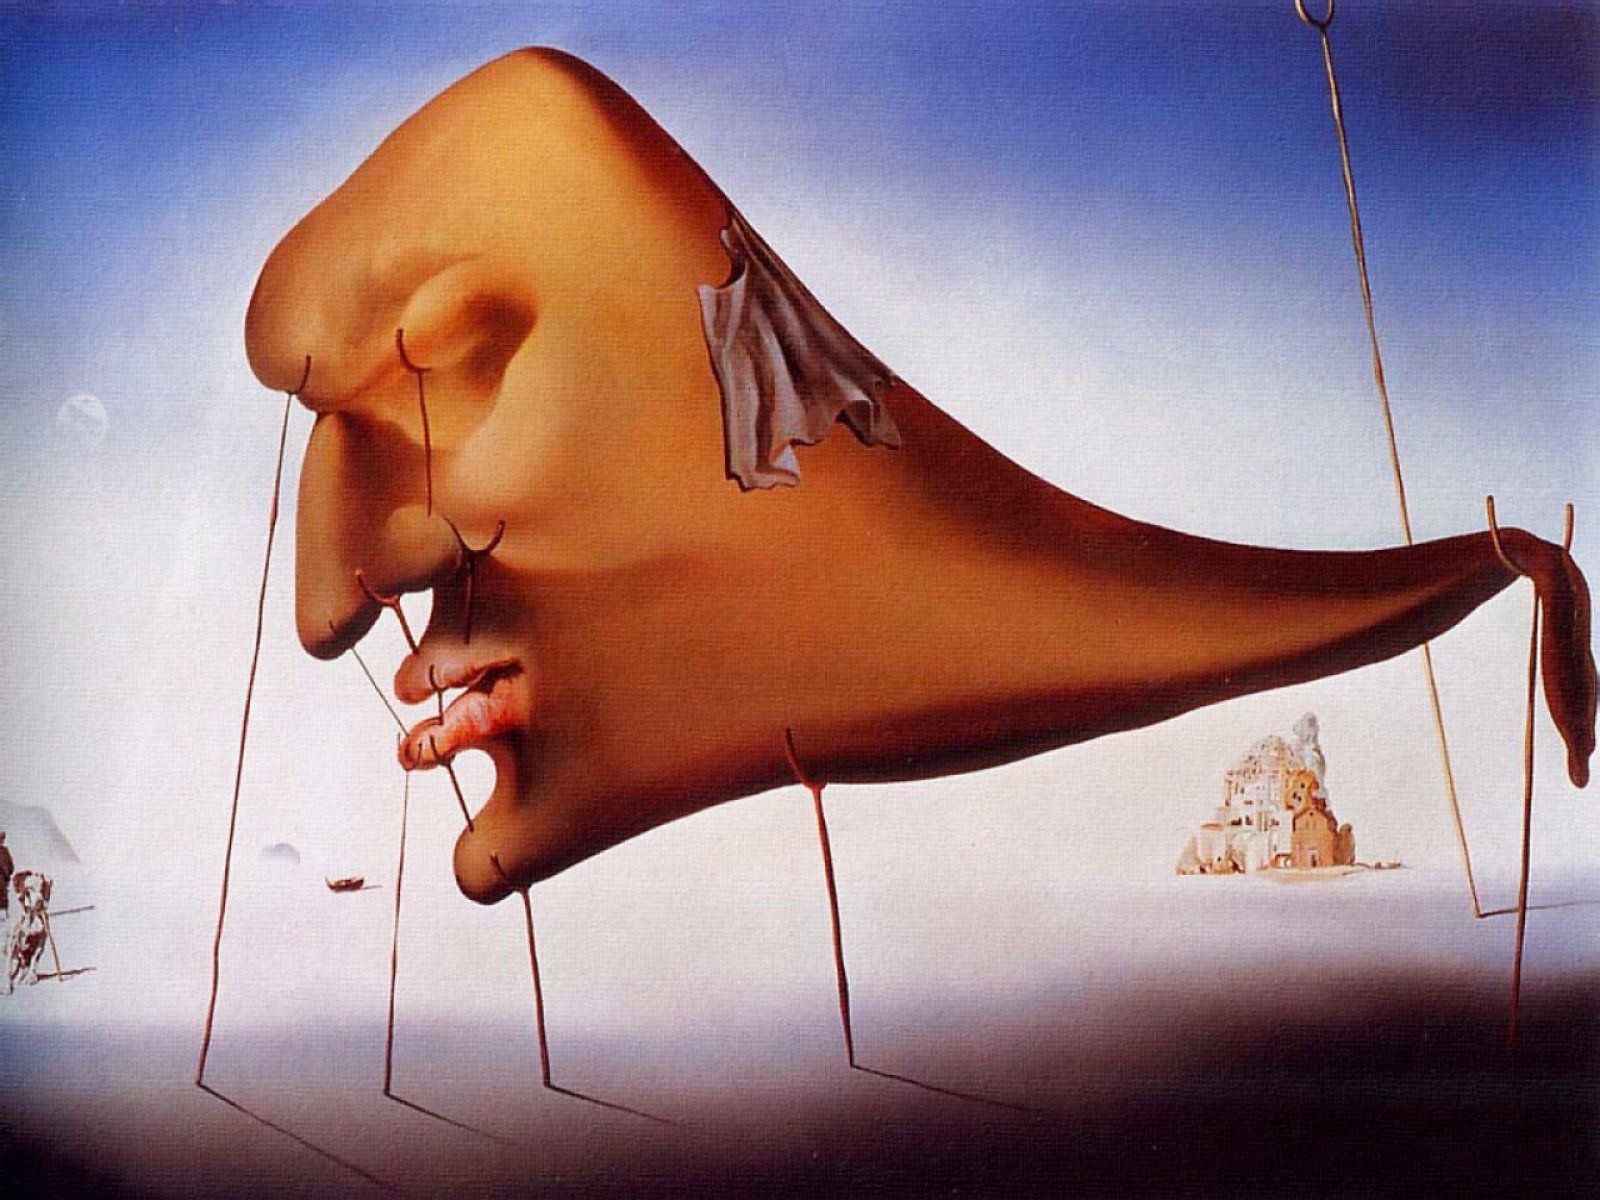 Le Sommeil By Salvador Dali A Favorite Of Mine Salvador Dali Art Dali Paintings Dali Art